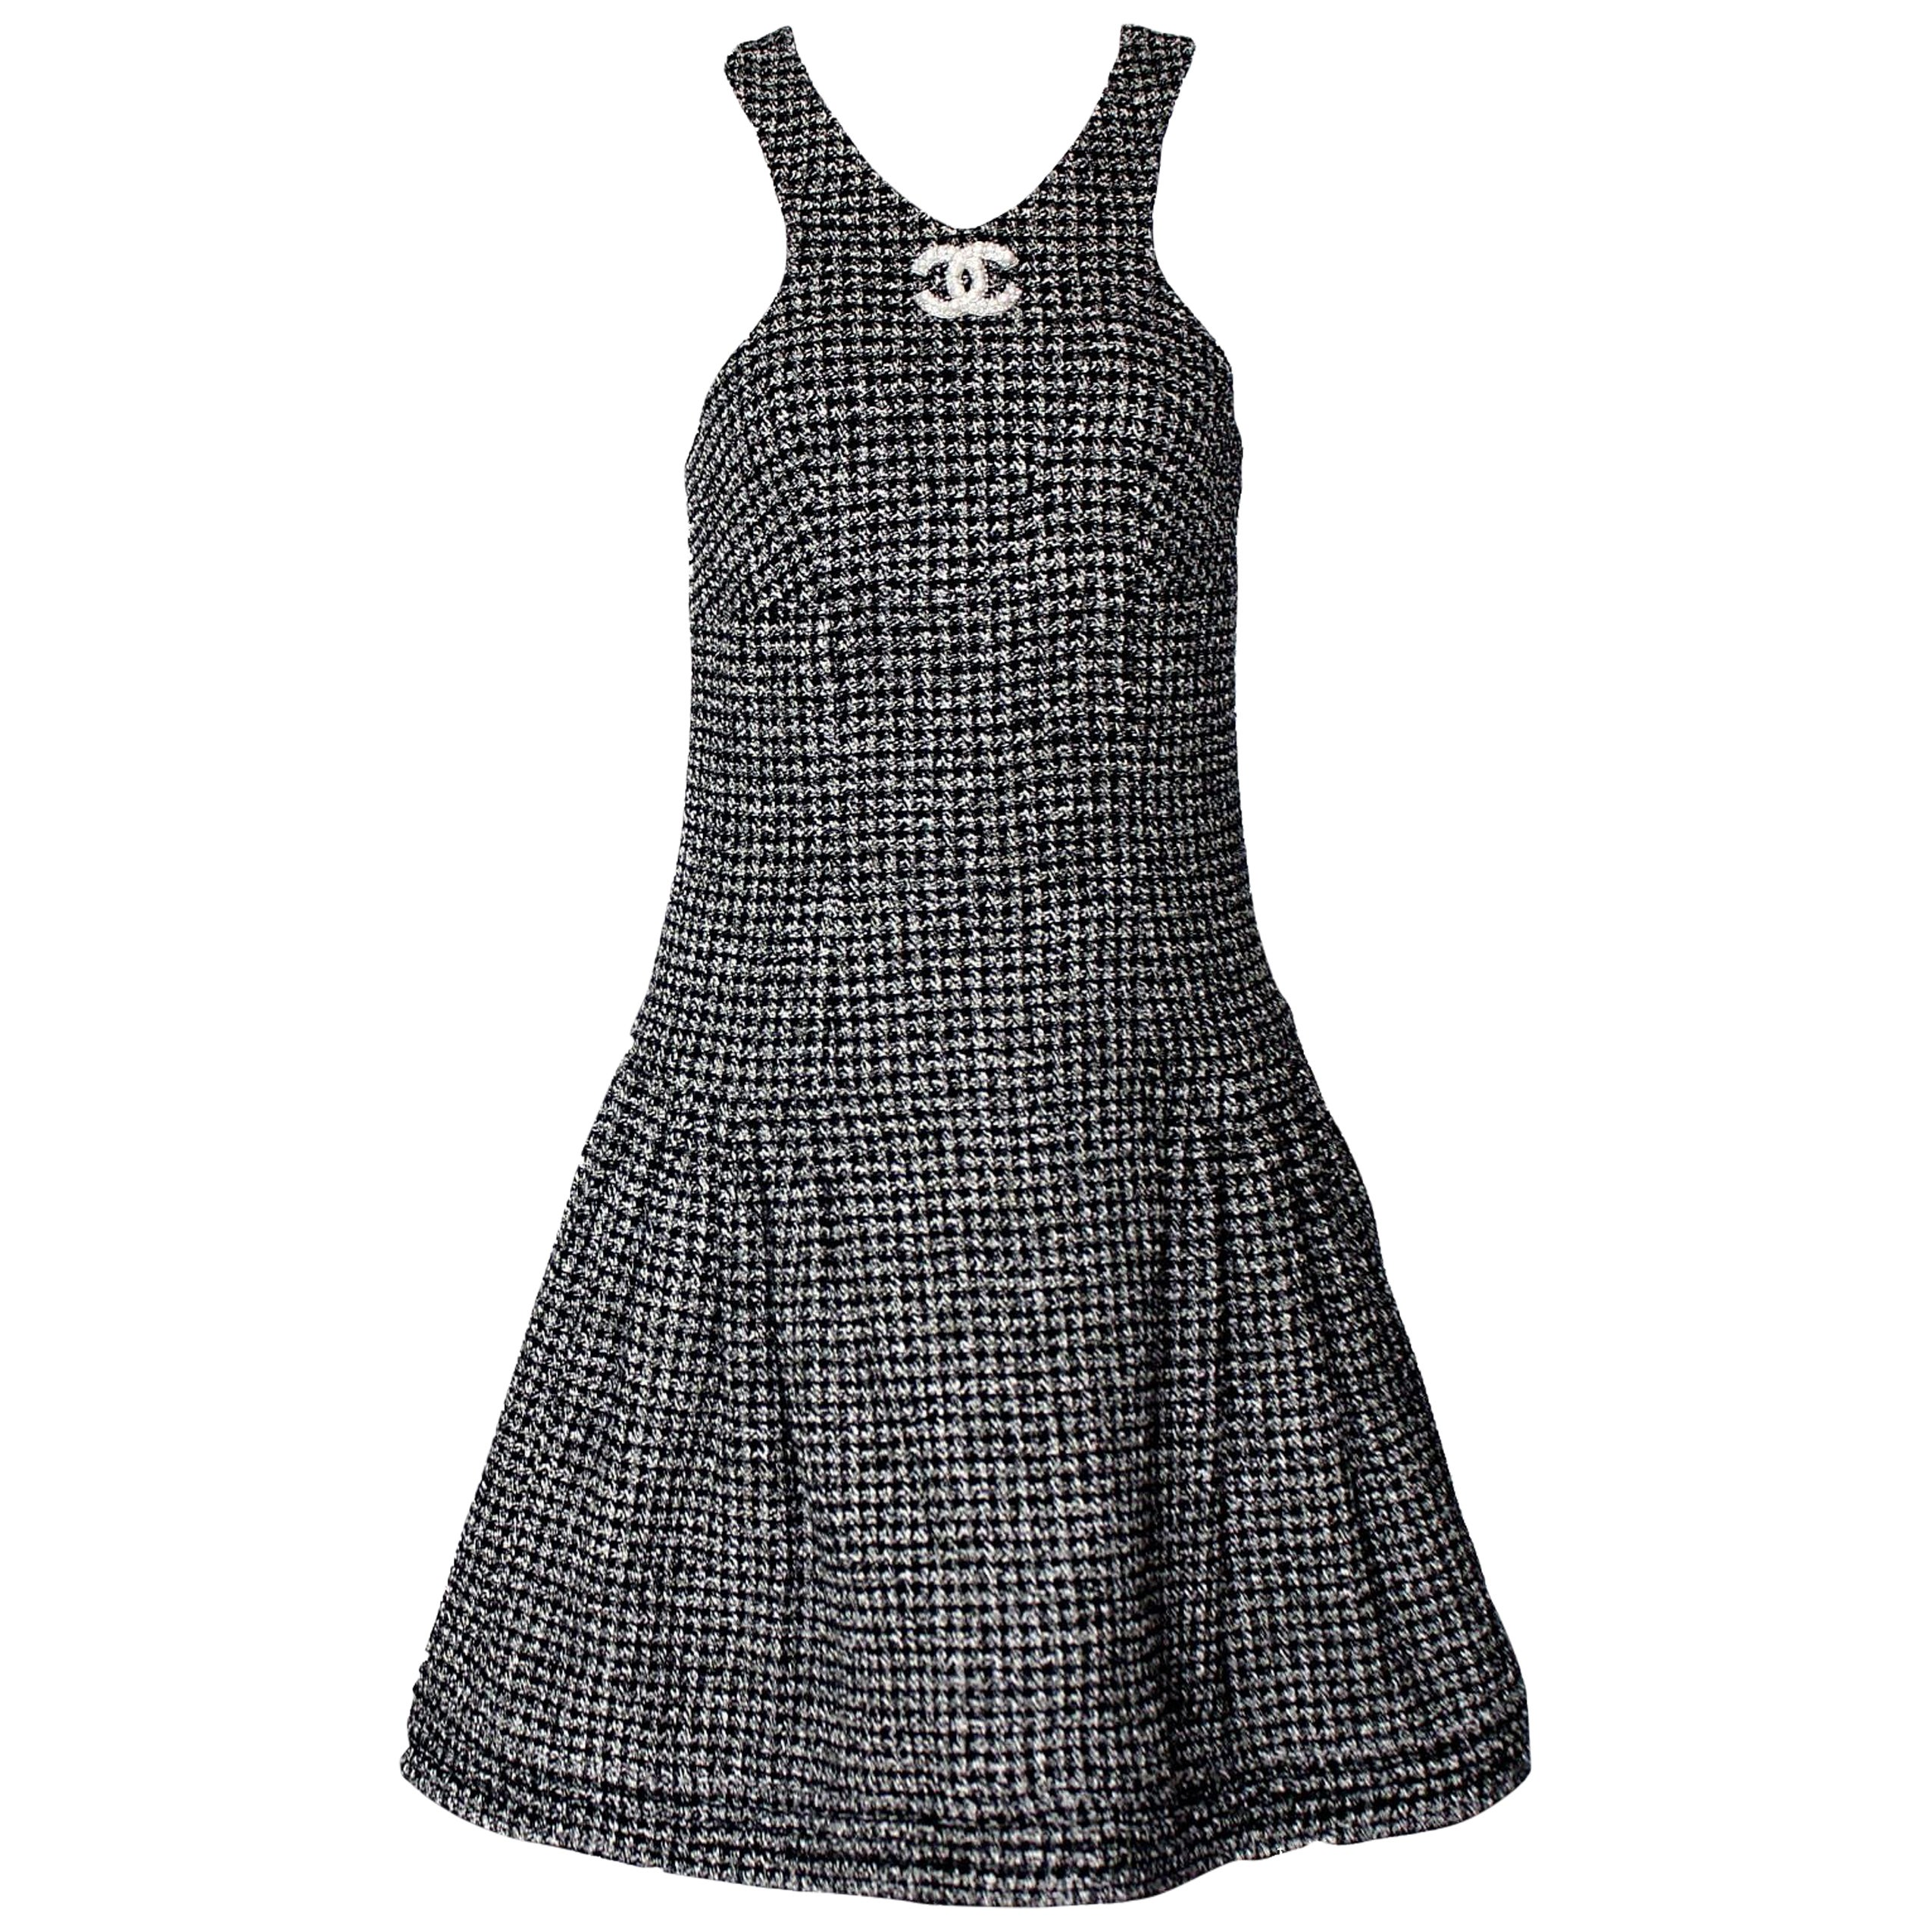 Stunning CHANEL Braided Tweed Dress